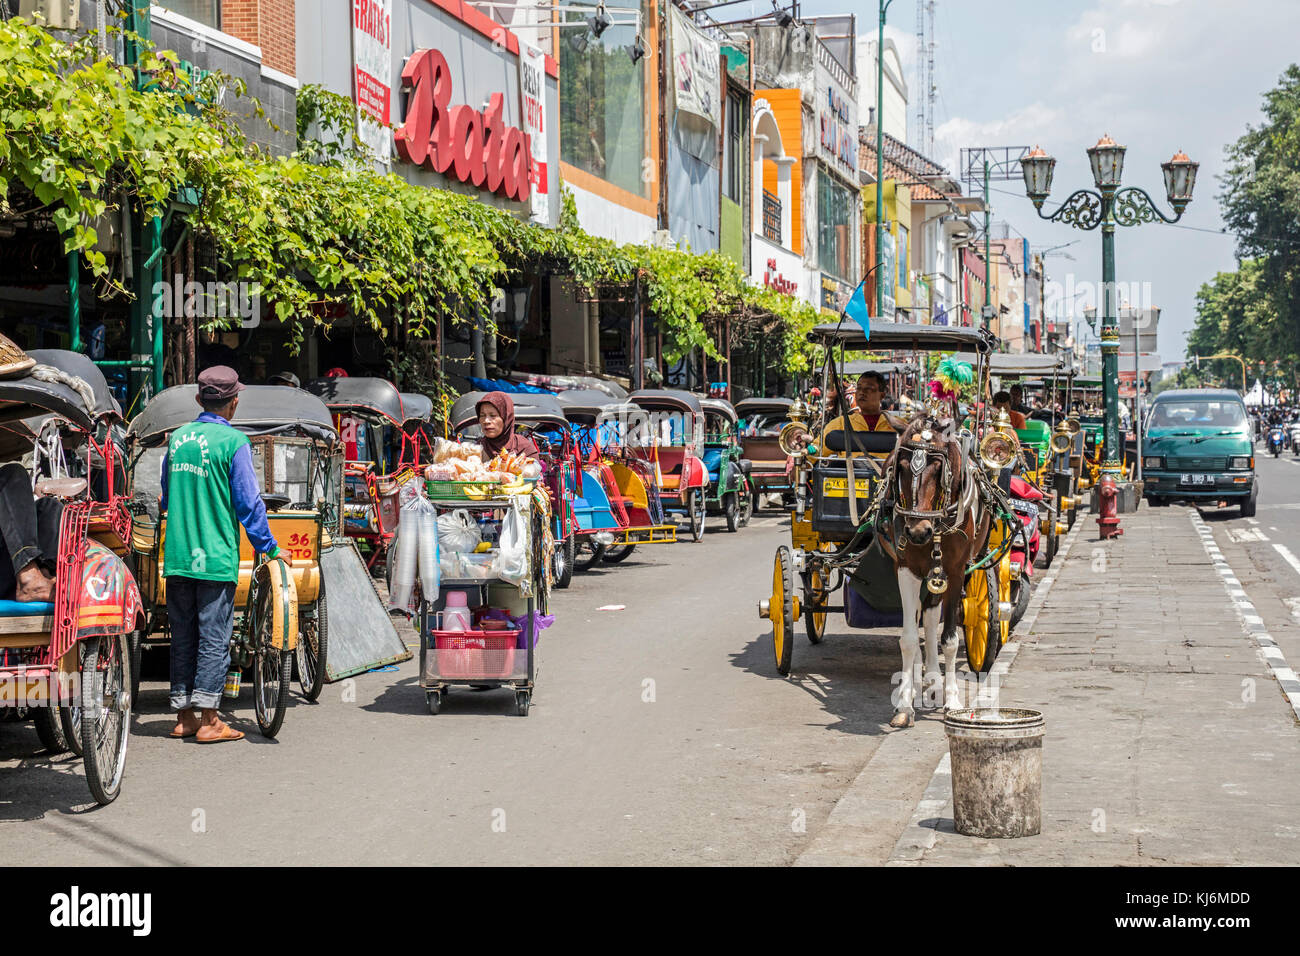 Cycle rickshaws / becak and horse-drawn carriages for public transport in Jalan Malioboro, major shopping street - Stock Image